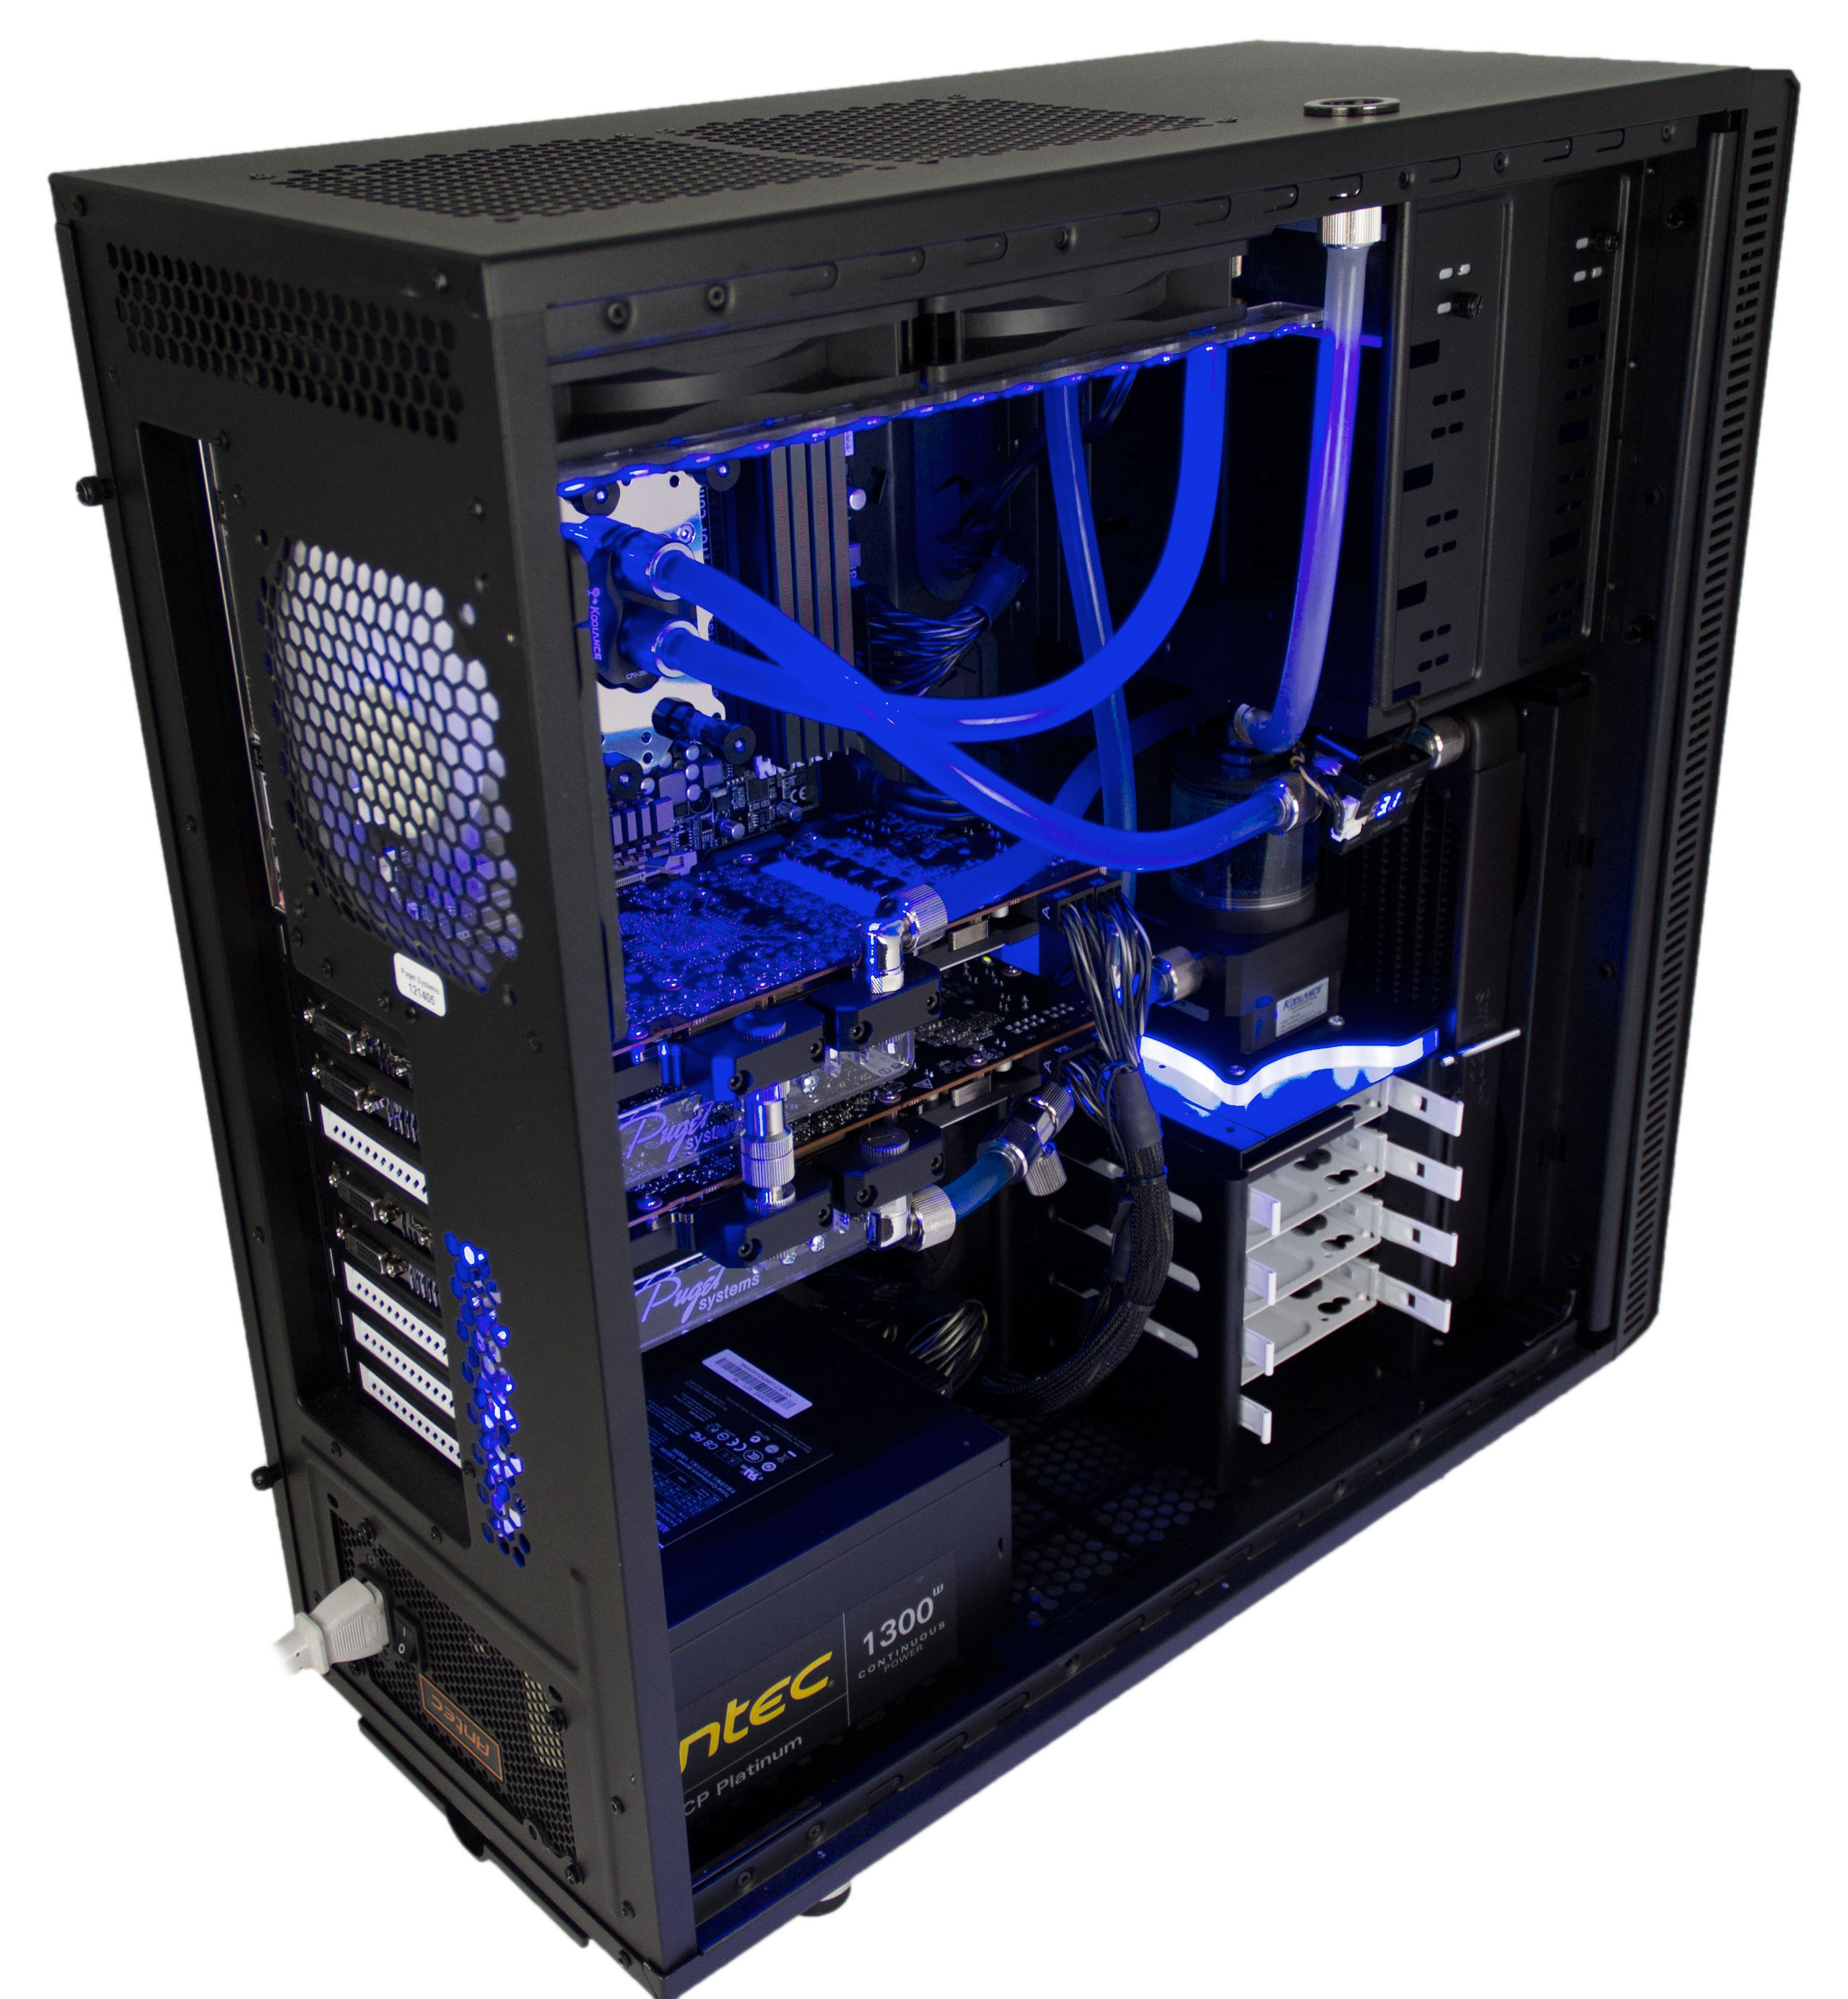 Full liquid-cooling in a Puget Deluge XL system